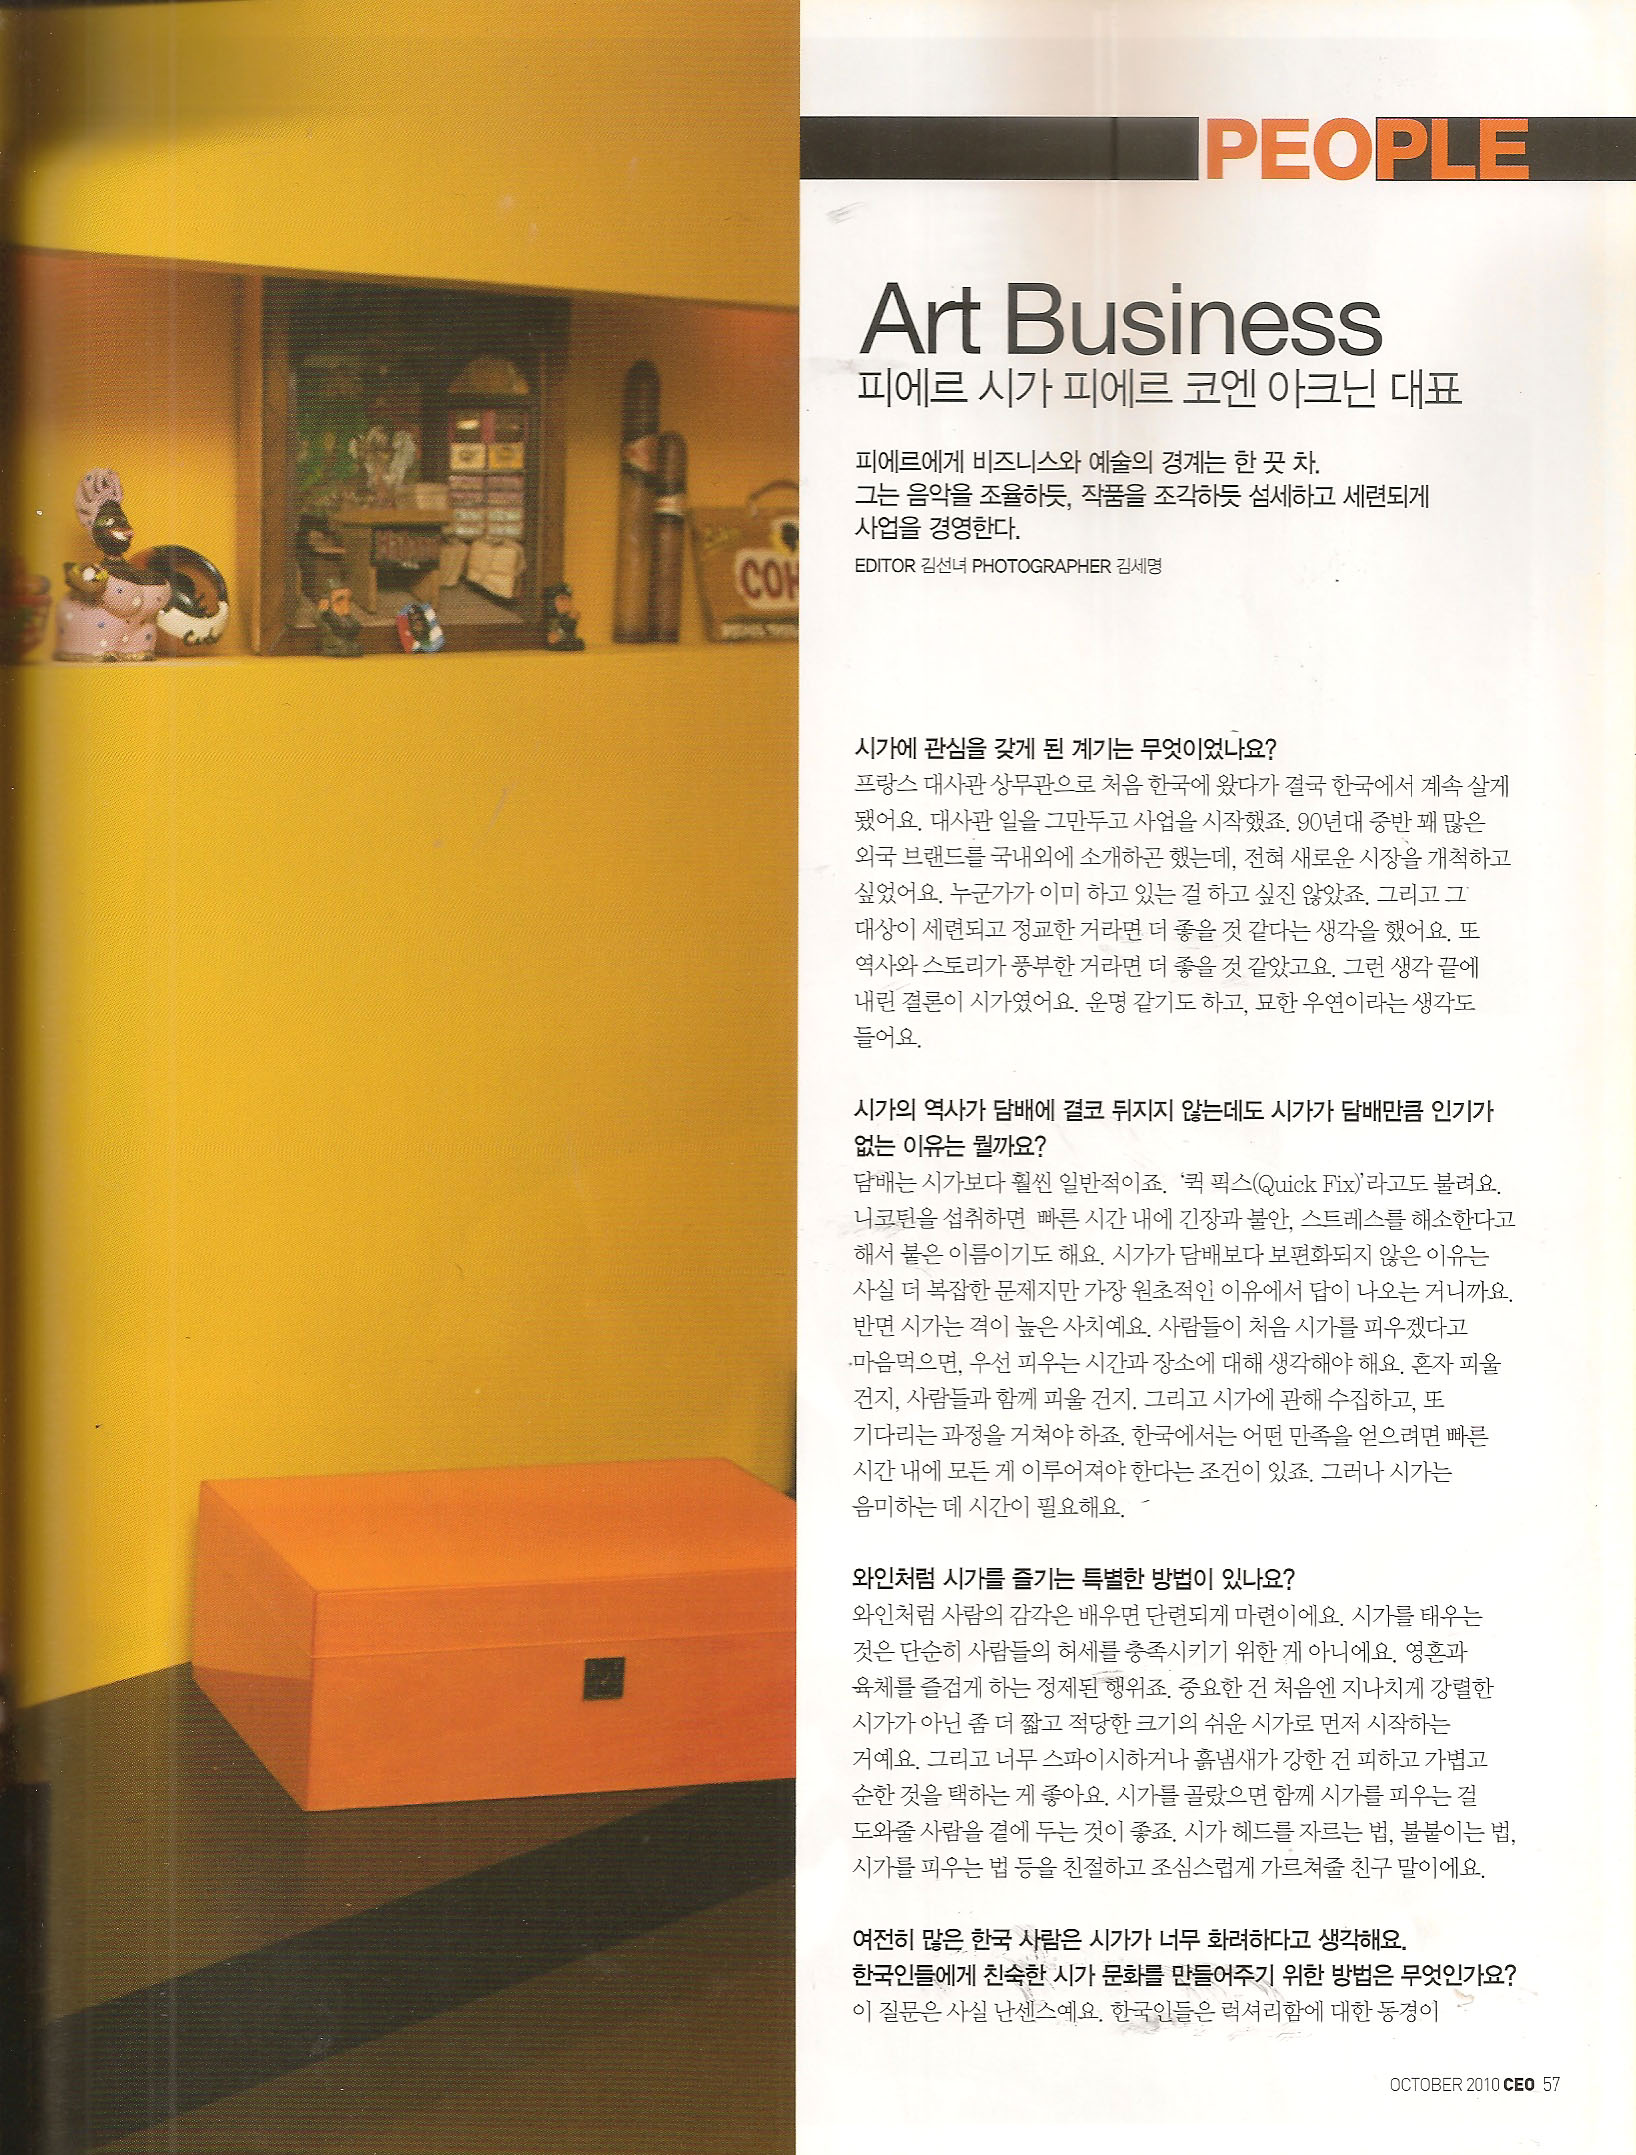 2010-10 CEO article2.jpg